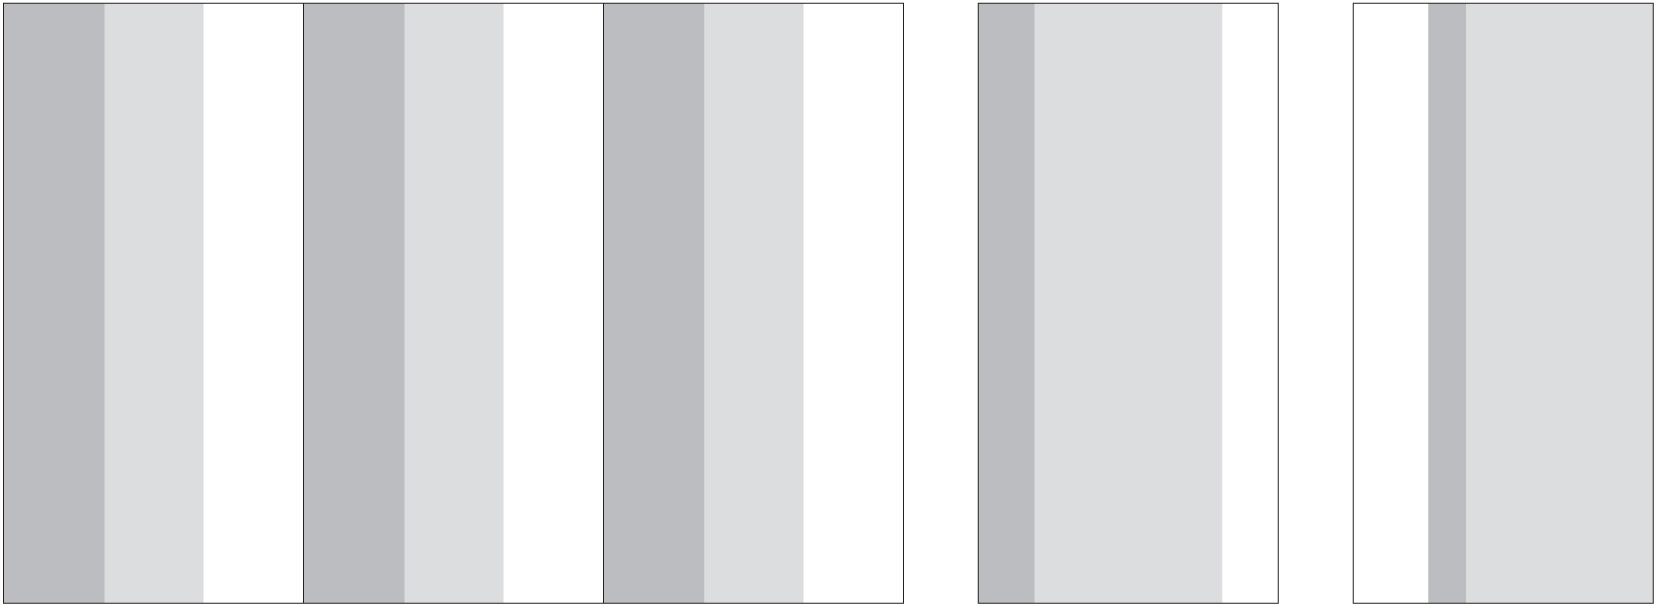 """Standard Layout (108"""" height by 3 full width panels) and Single Panel Variations"""